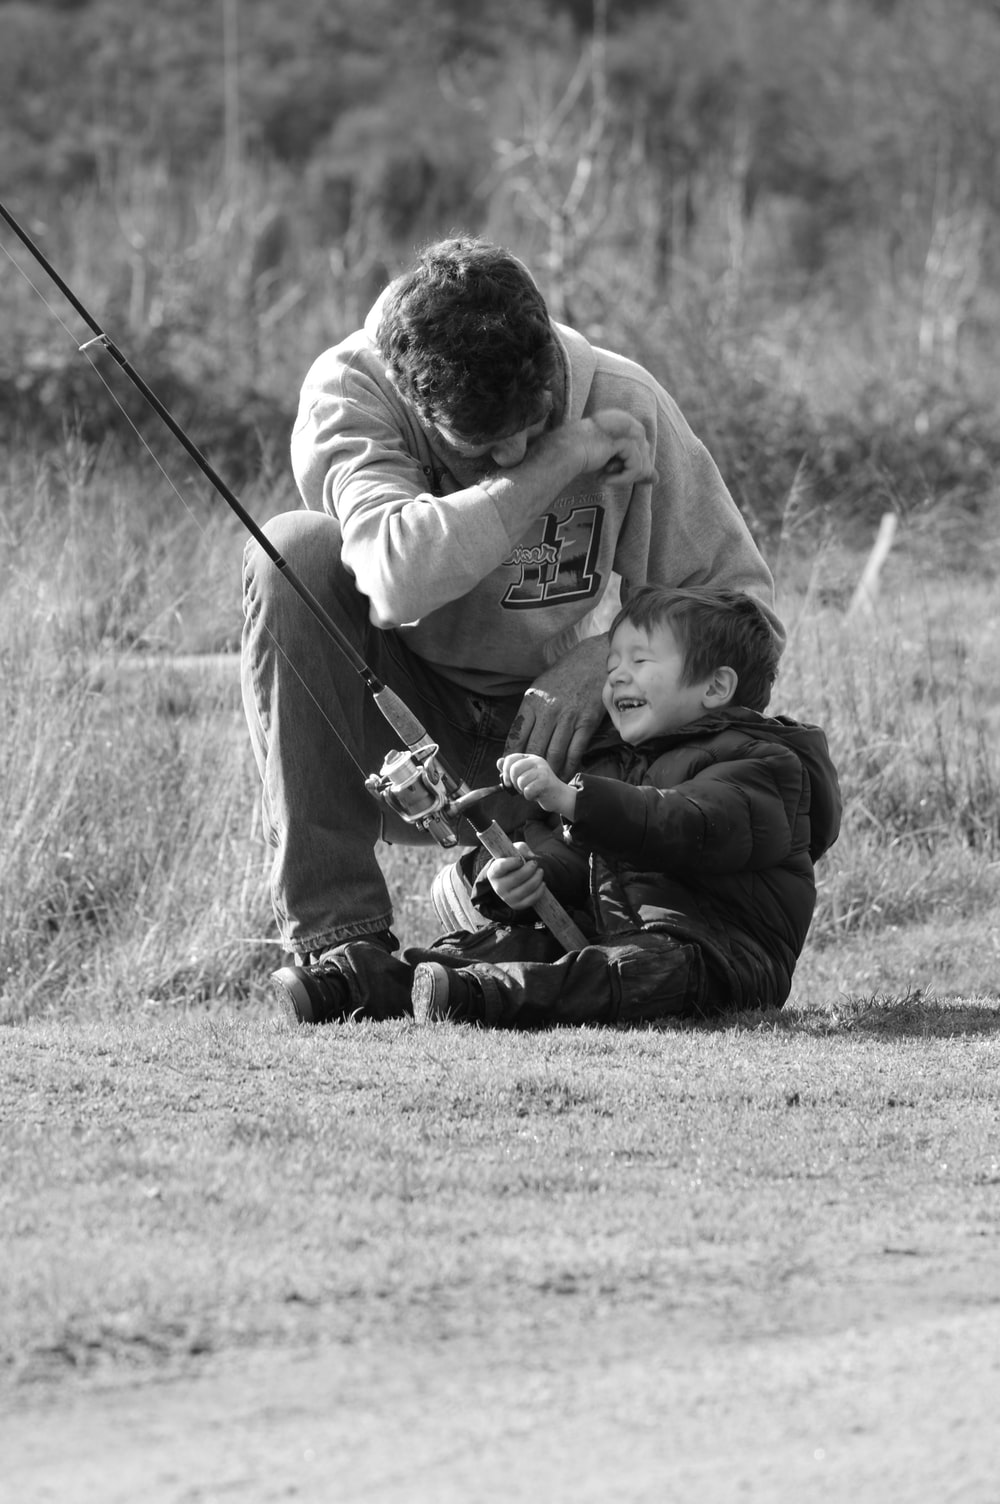 grayscale photo of man in hoodie playing with a baby